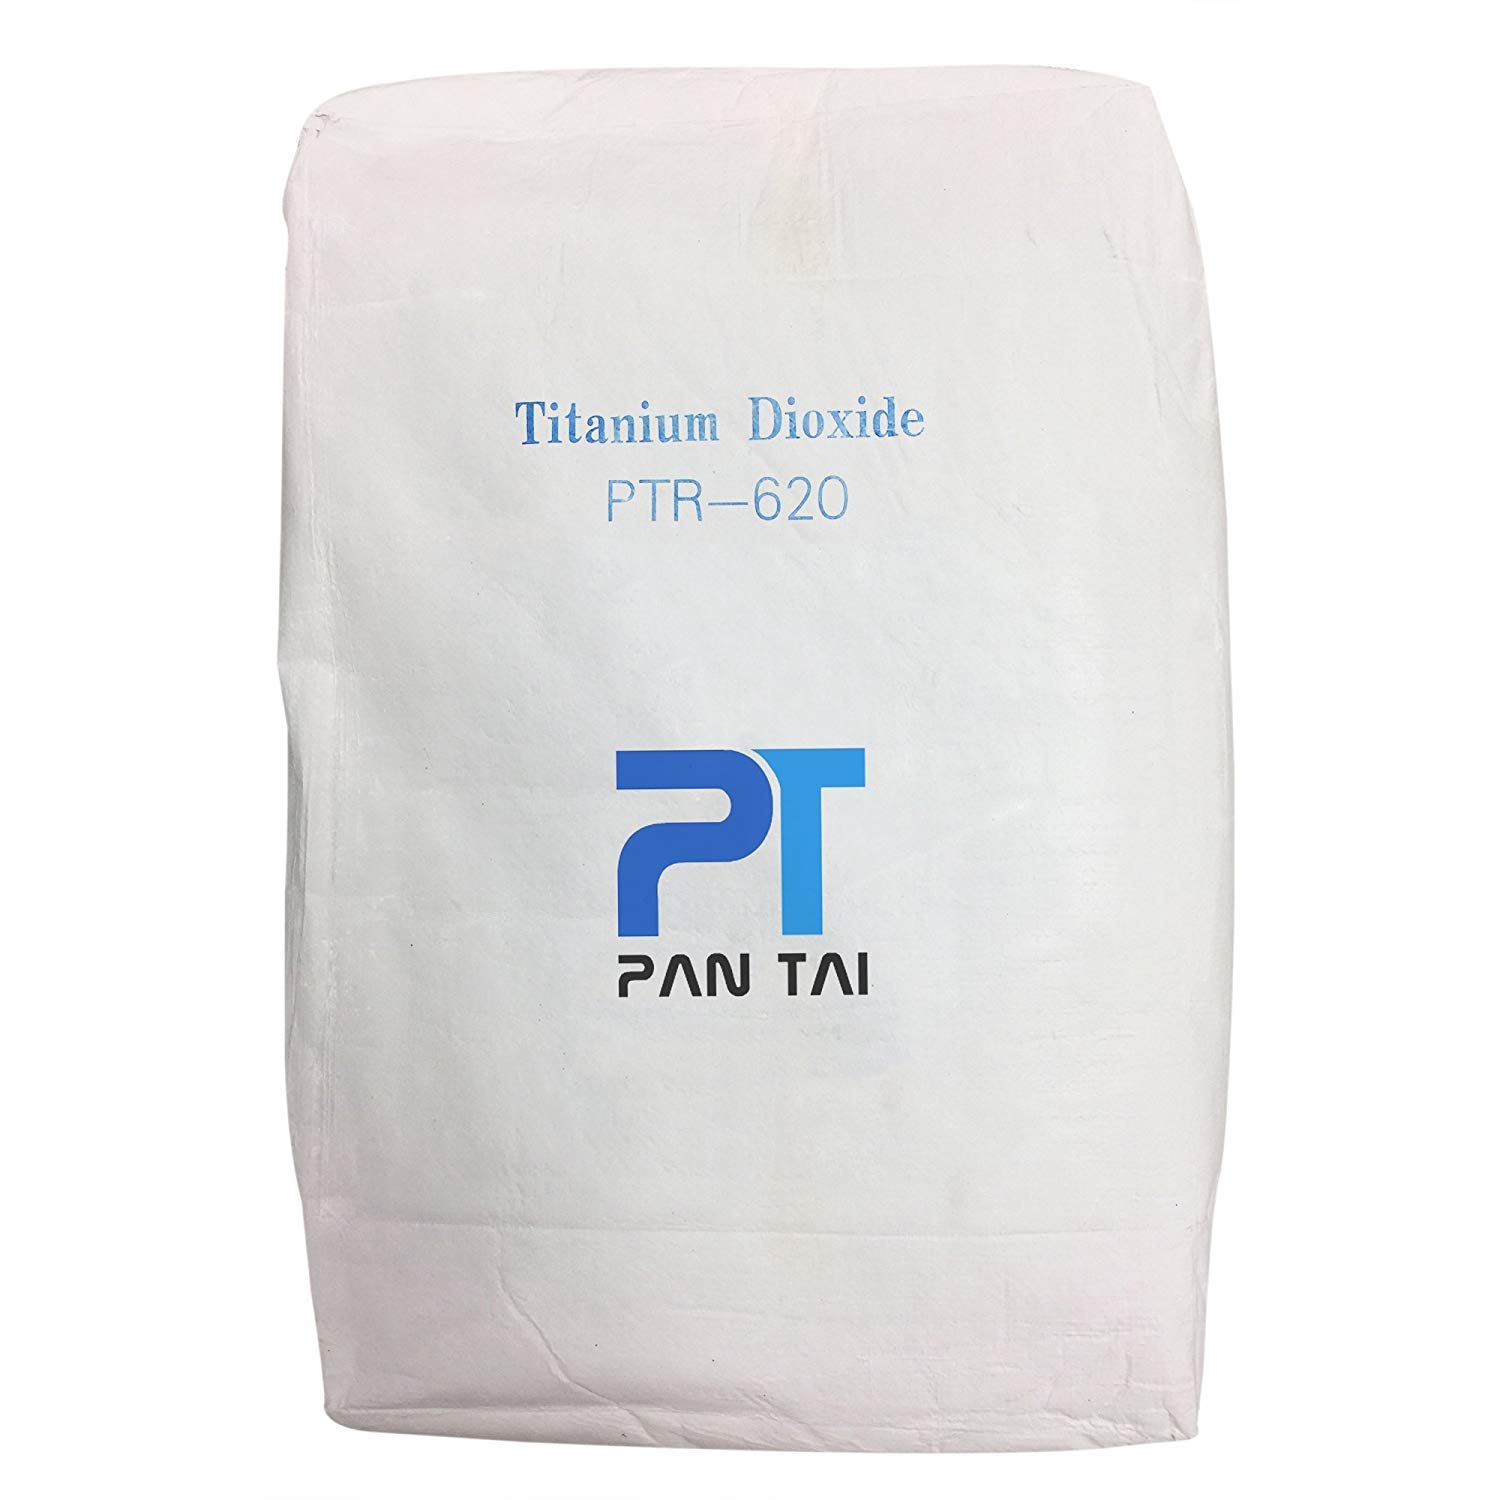 Titanium Dioxide Cosmetic Grade Soap Making, Crafts, Paints and Pigment Colorant Resealable Pouch TiO2 PTR-620 55lb